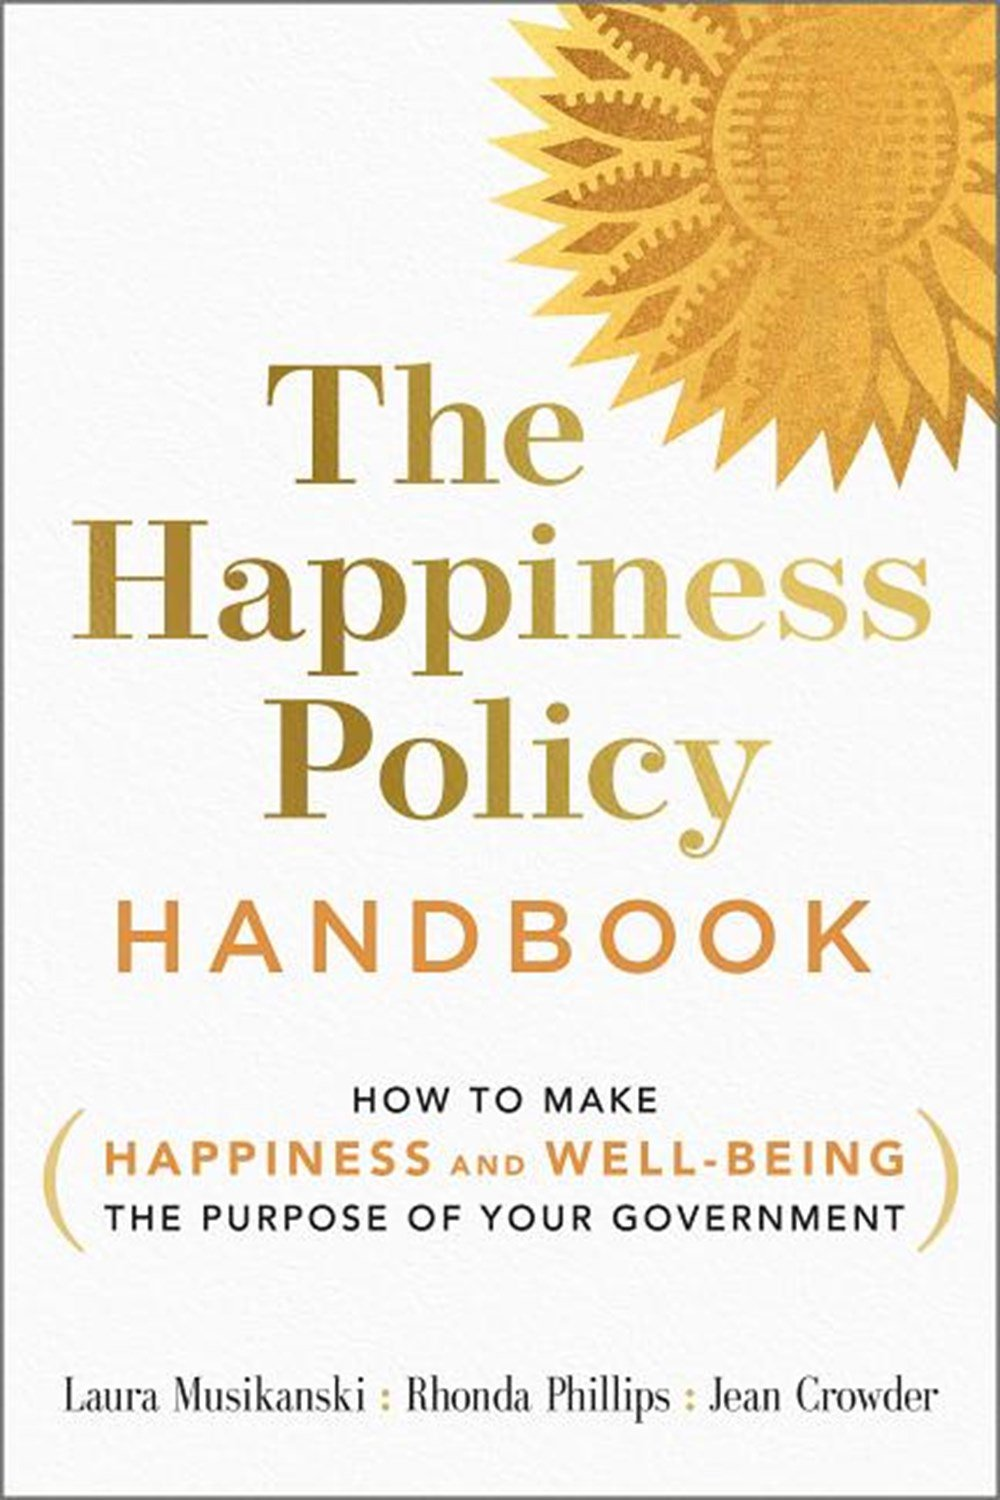 Happiness Policy Handbook How to Make Happiness and Well-Being the Purpose of Your Government